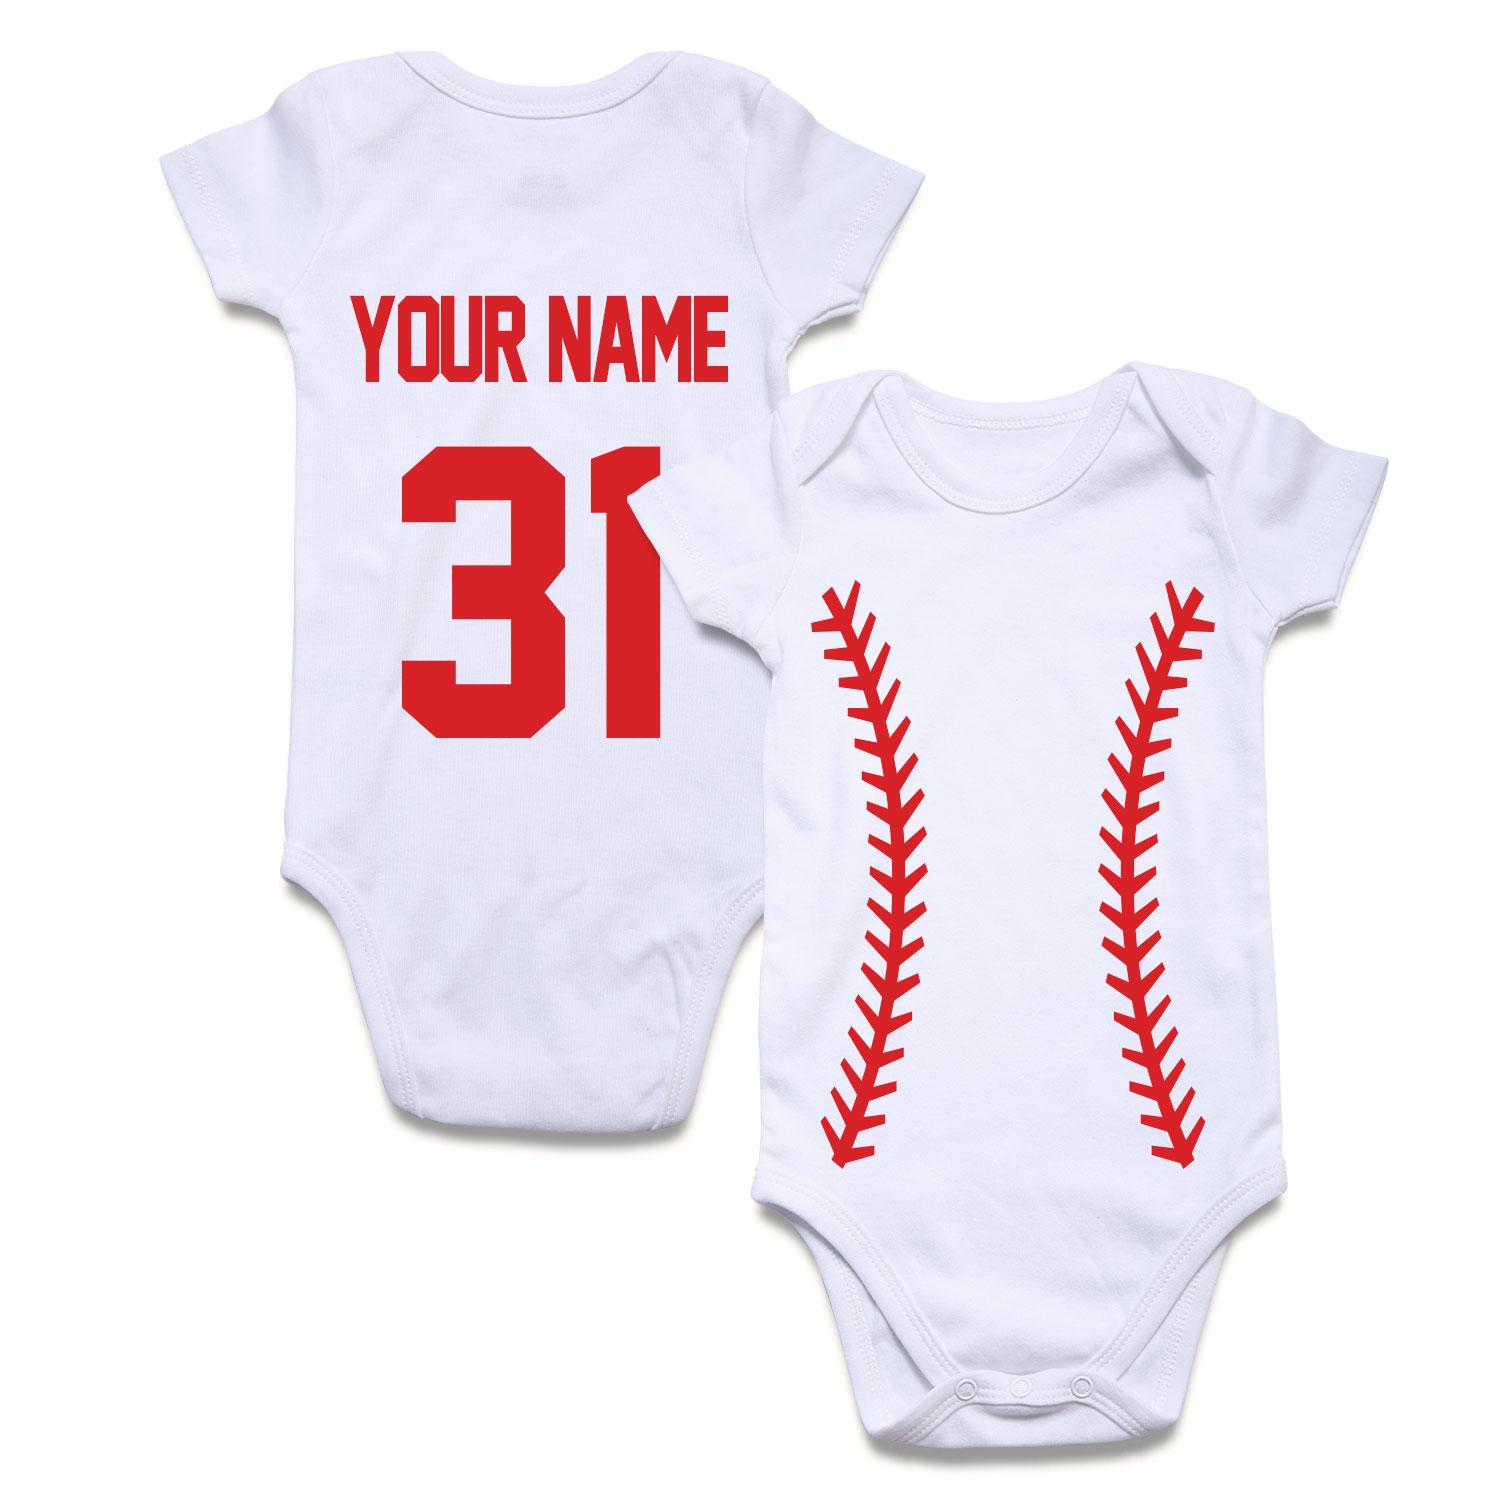 baby/'s first christmas personalized  your name body suit t shirt 3m 6m 9m 12m